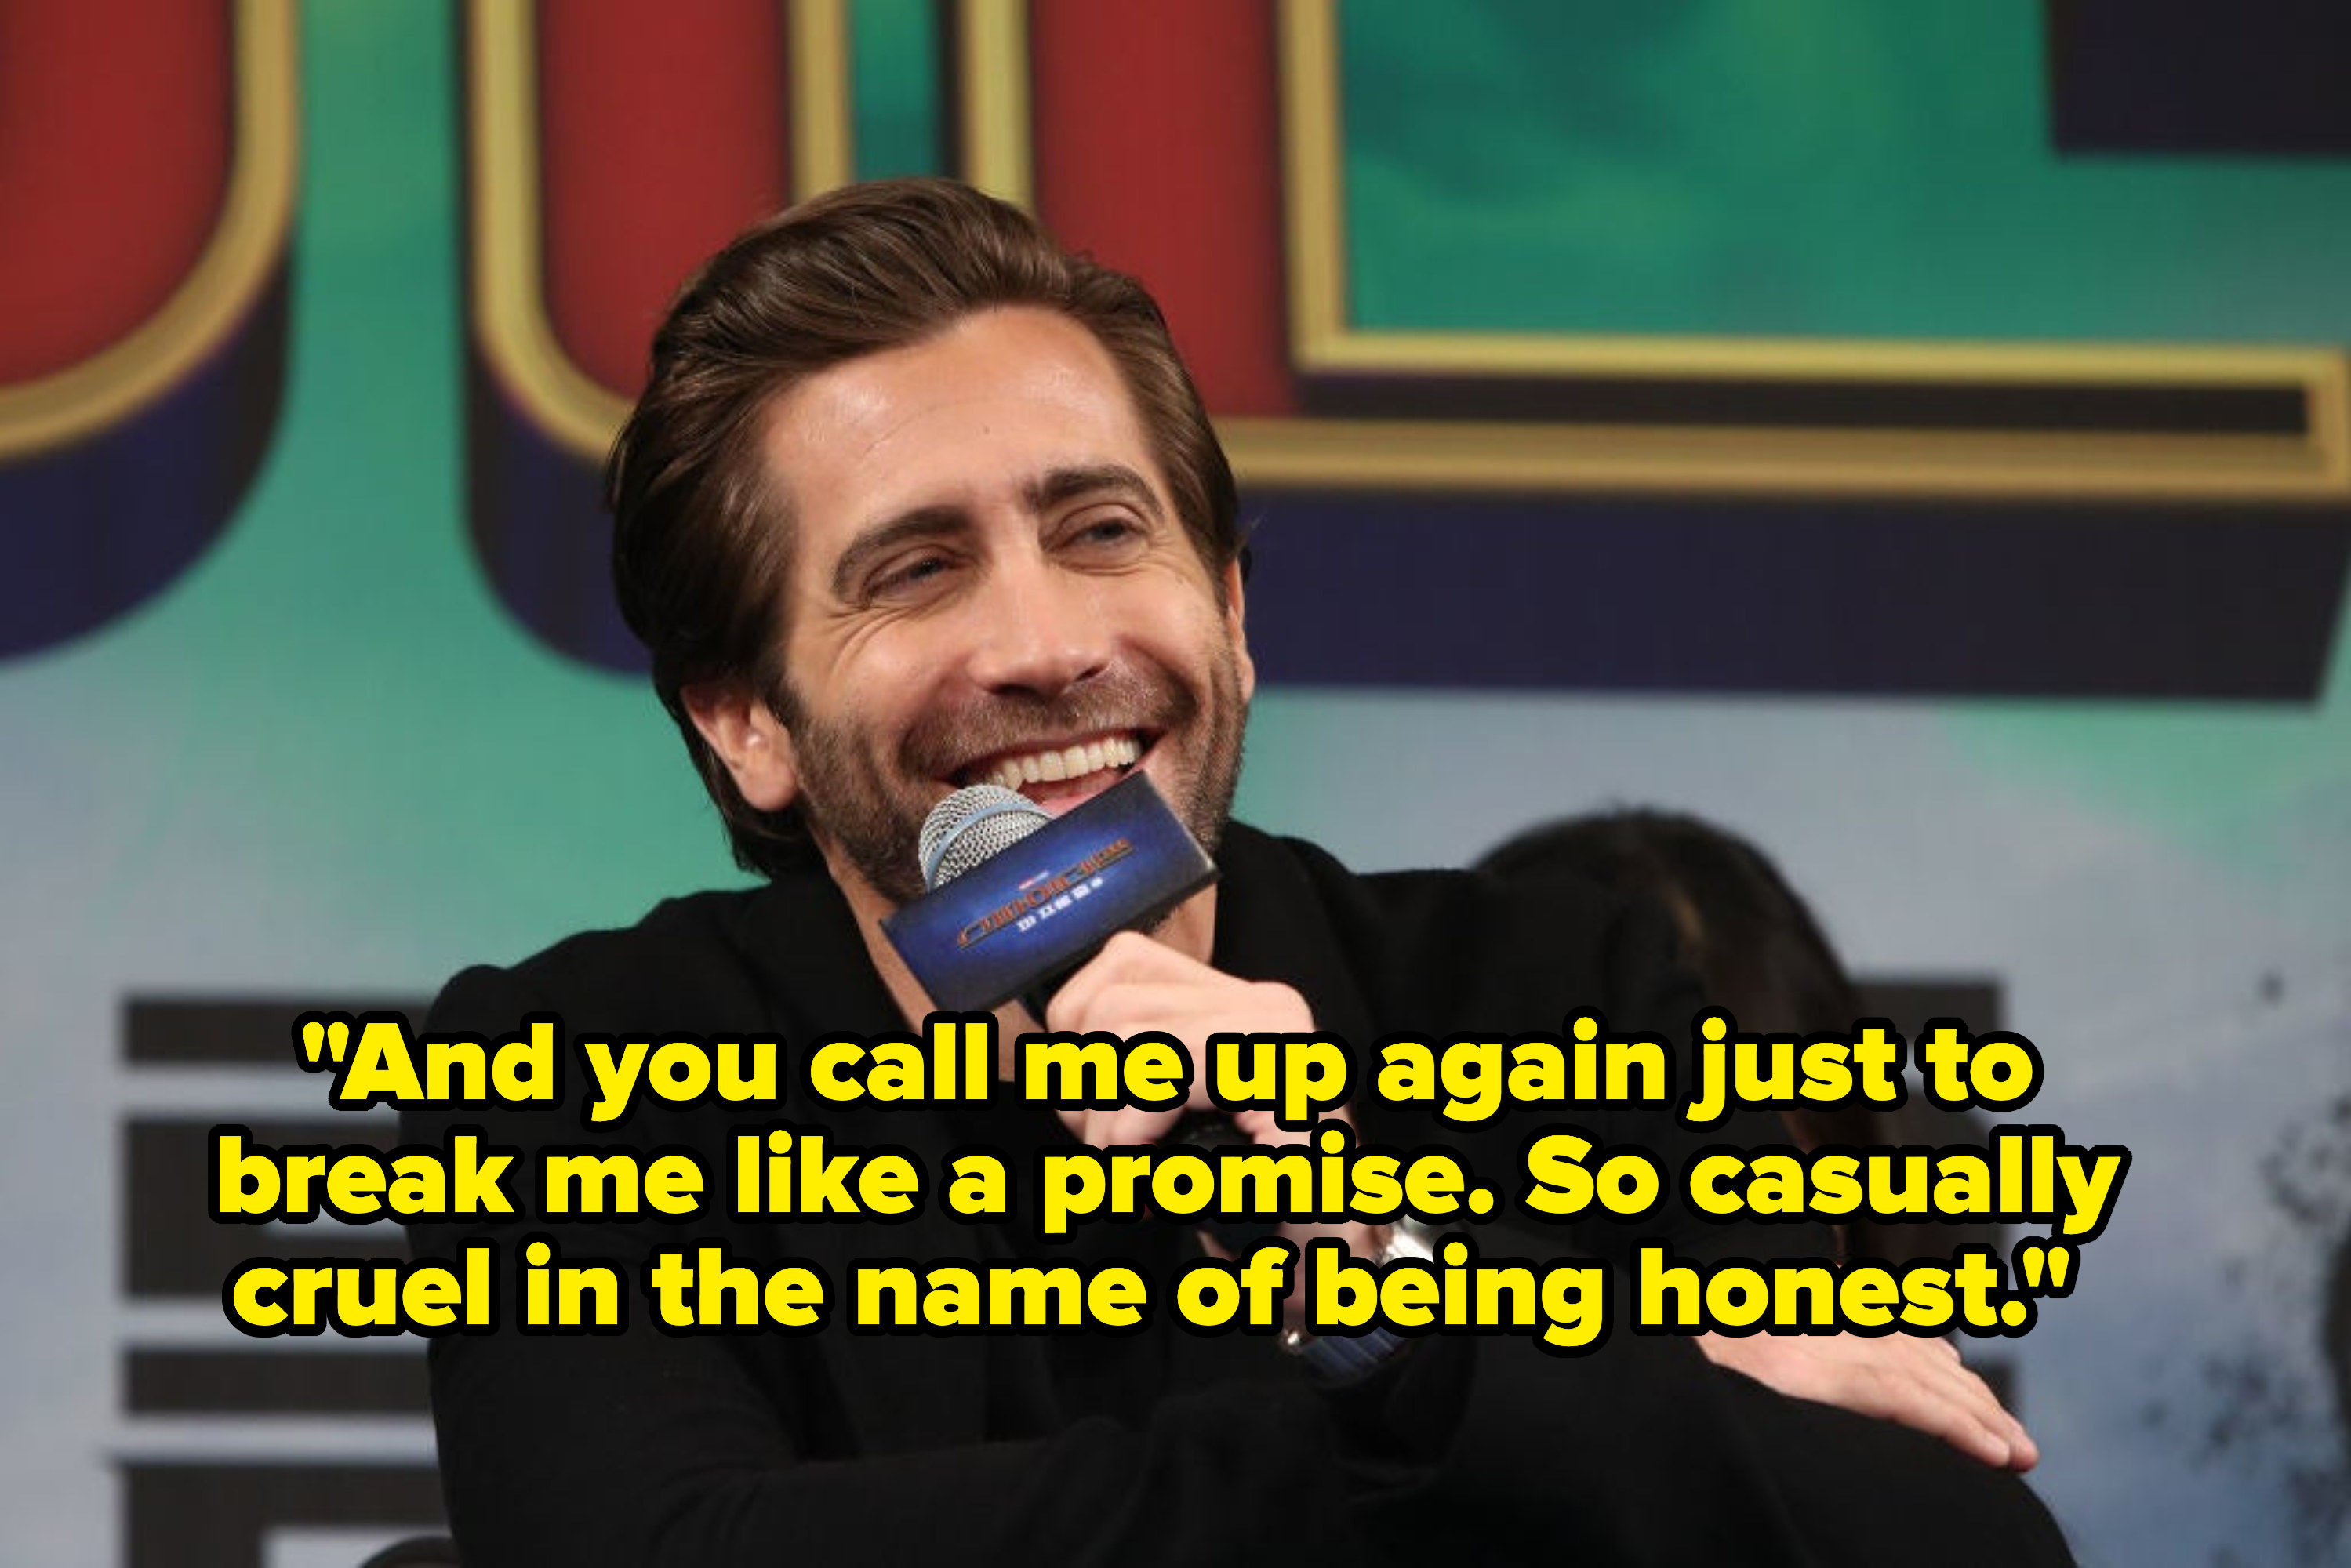 """Jake Gyllenhaal smiling, captioned with the lyric """"And you call me up again just to break me like a promise. So casually cruel in the name of being honest."""""""